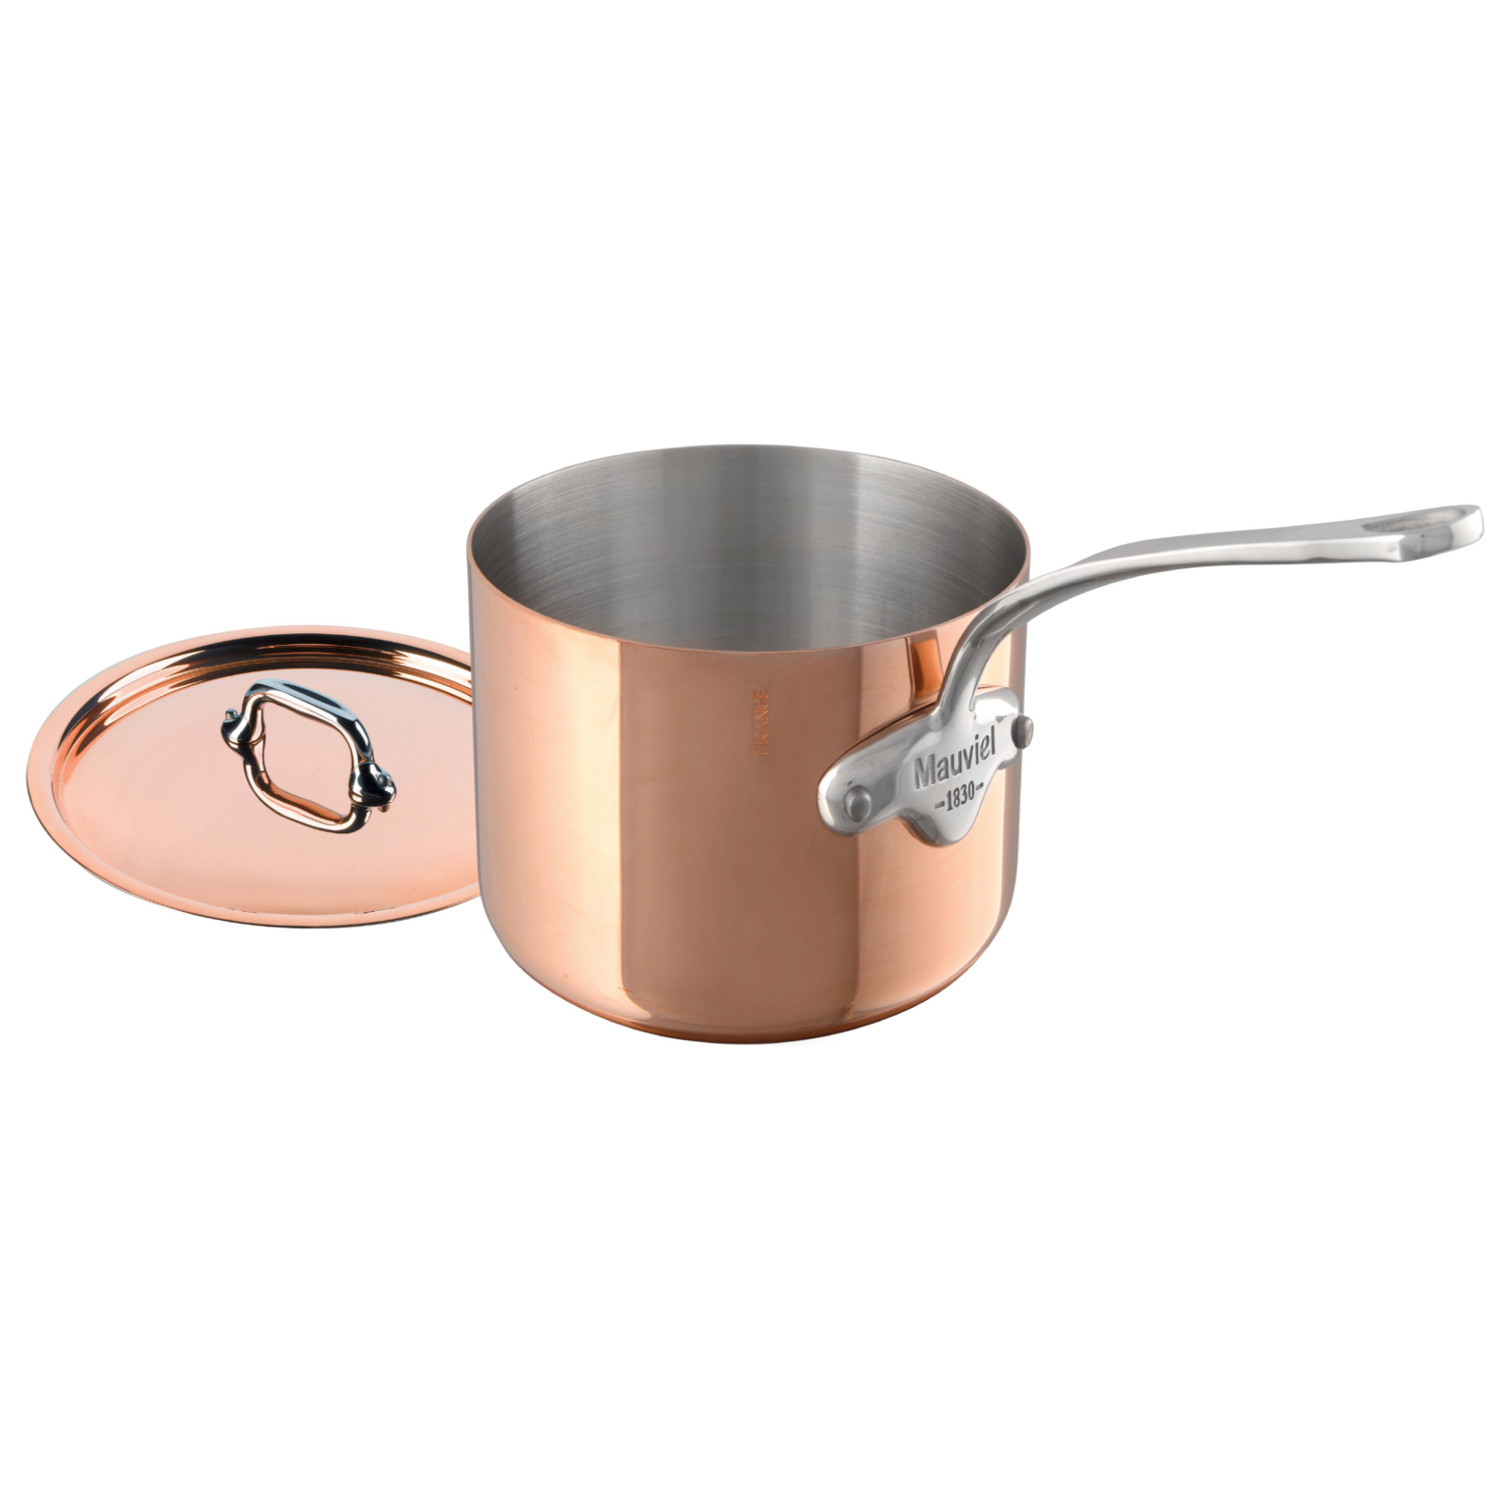 Mauviel M'cook Copper 3.6 Quart Saucepan and Lid